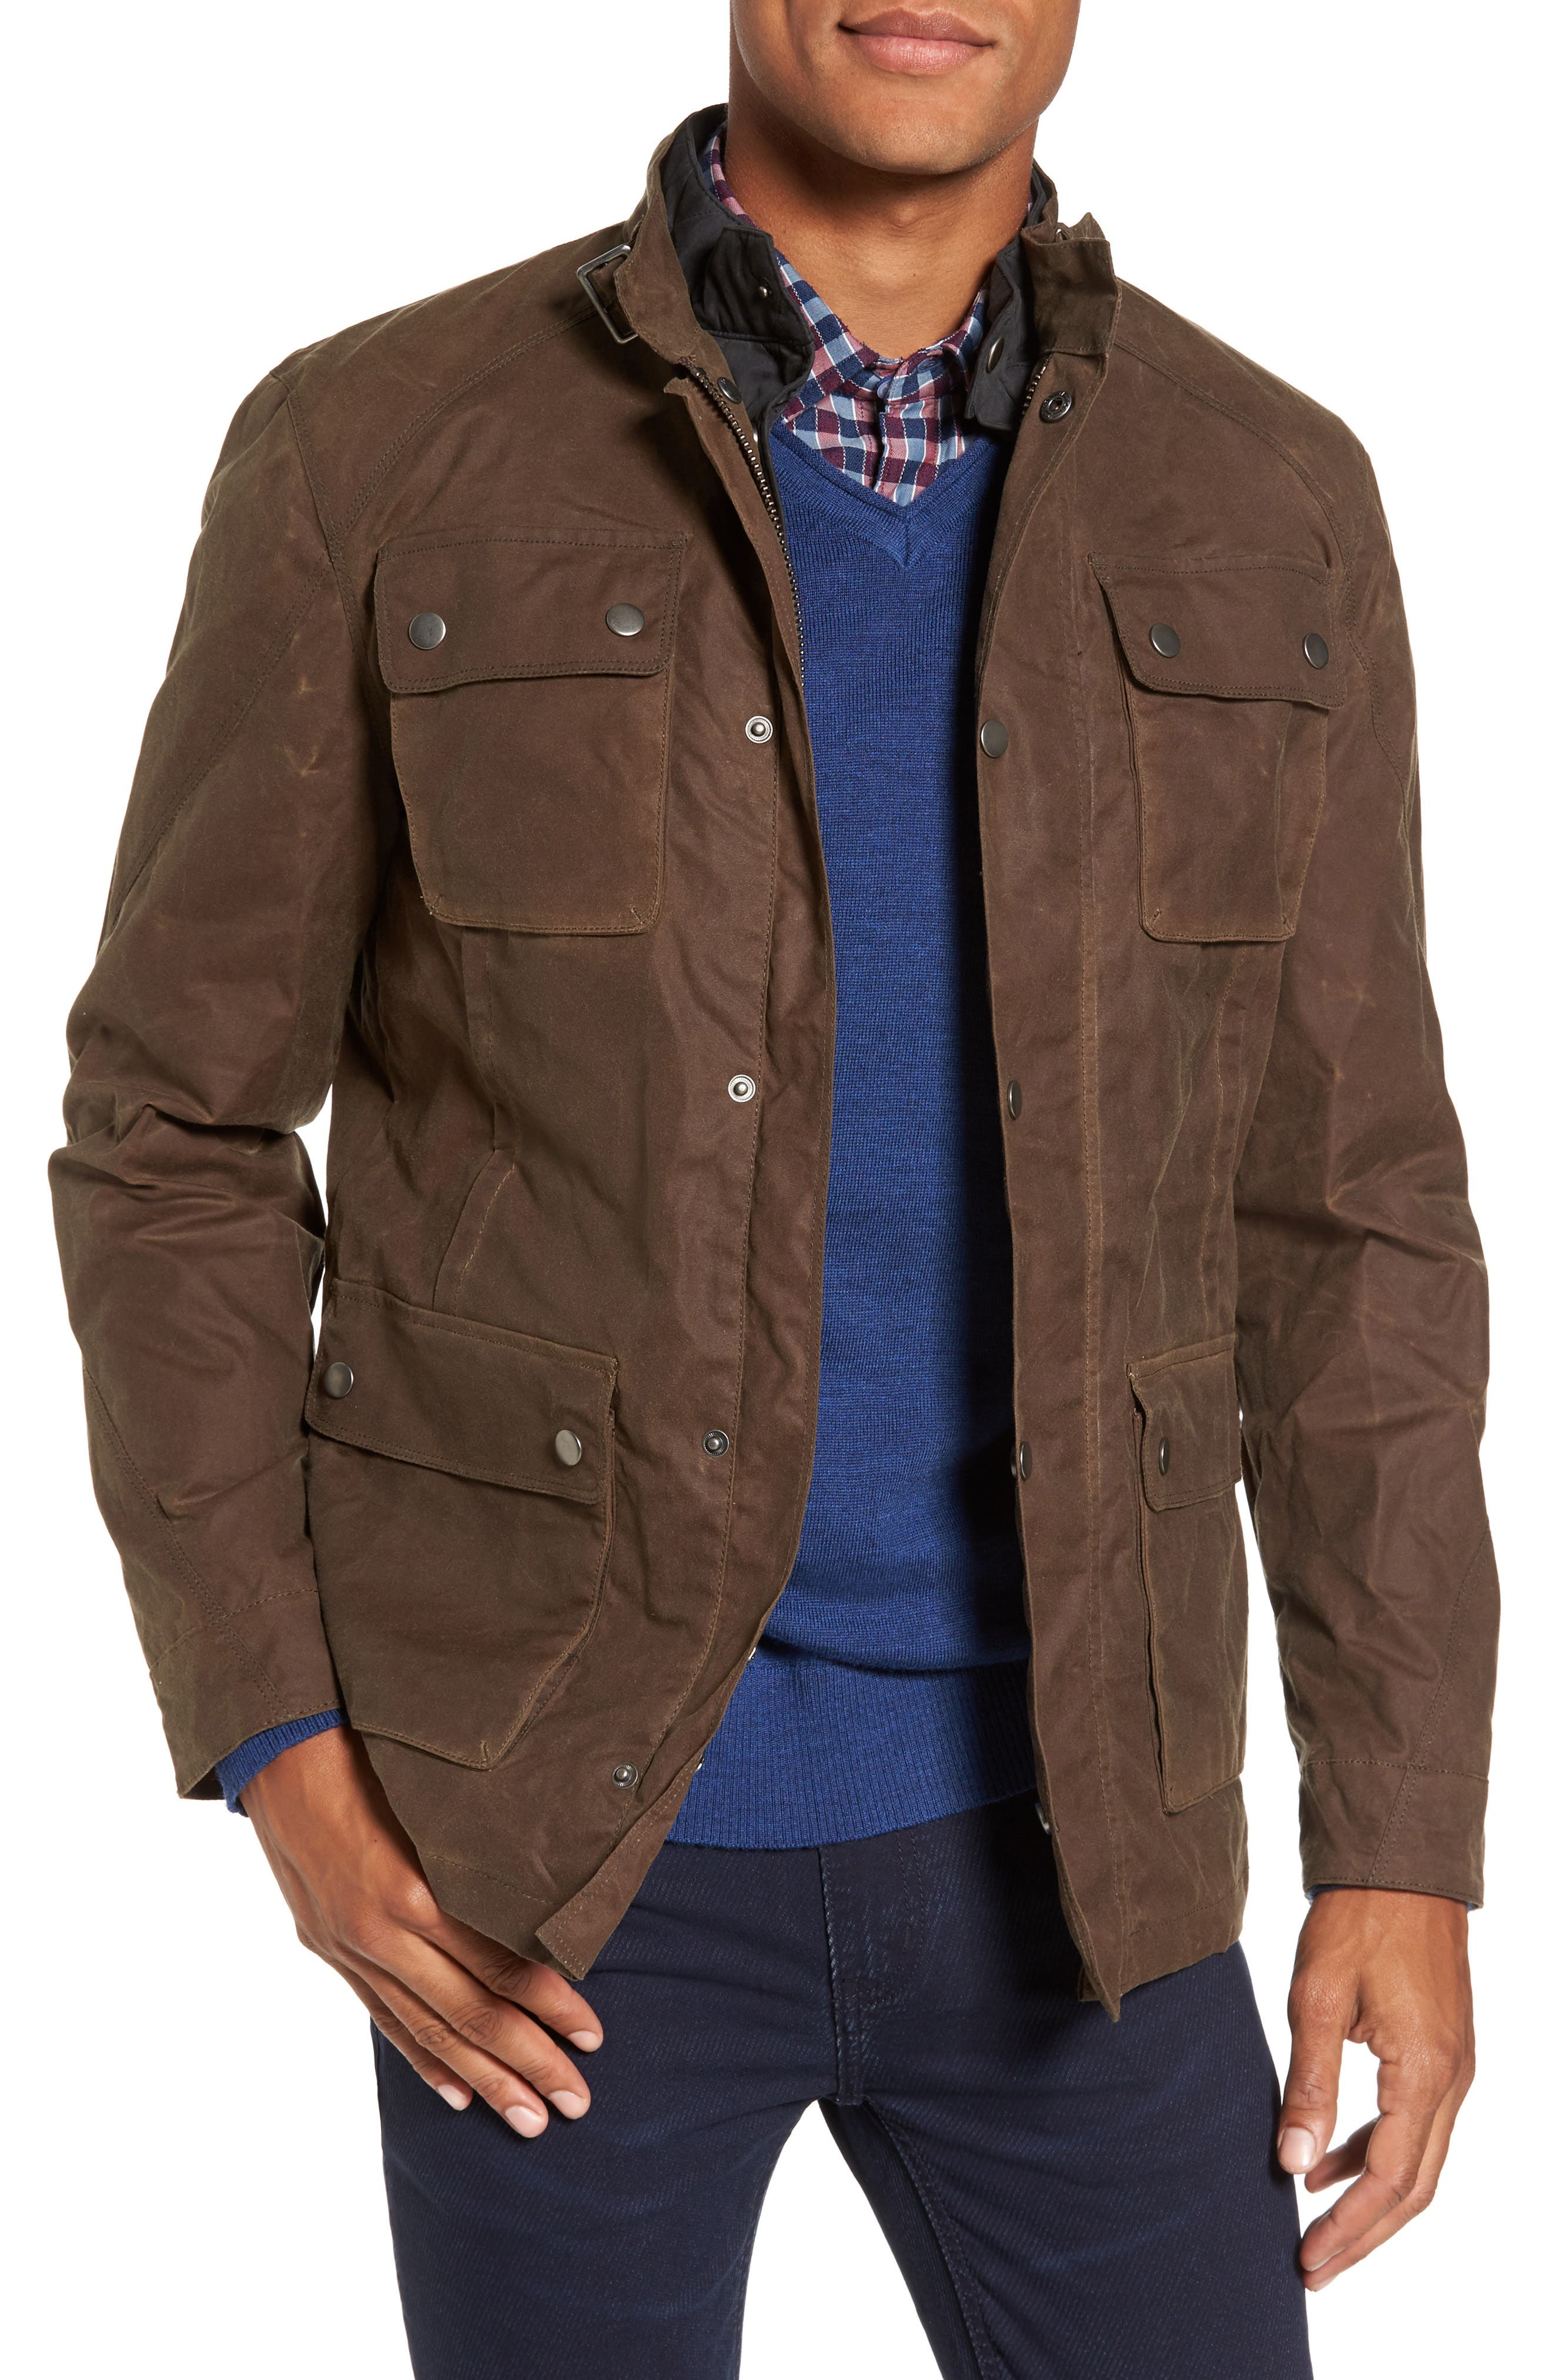 Alternate Image 1 Selected - W.R.K 3-in-1 Waxed Cotton Jacket with Removable Vest